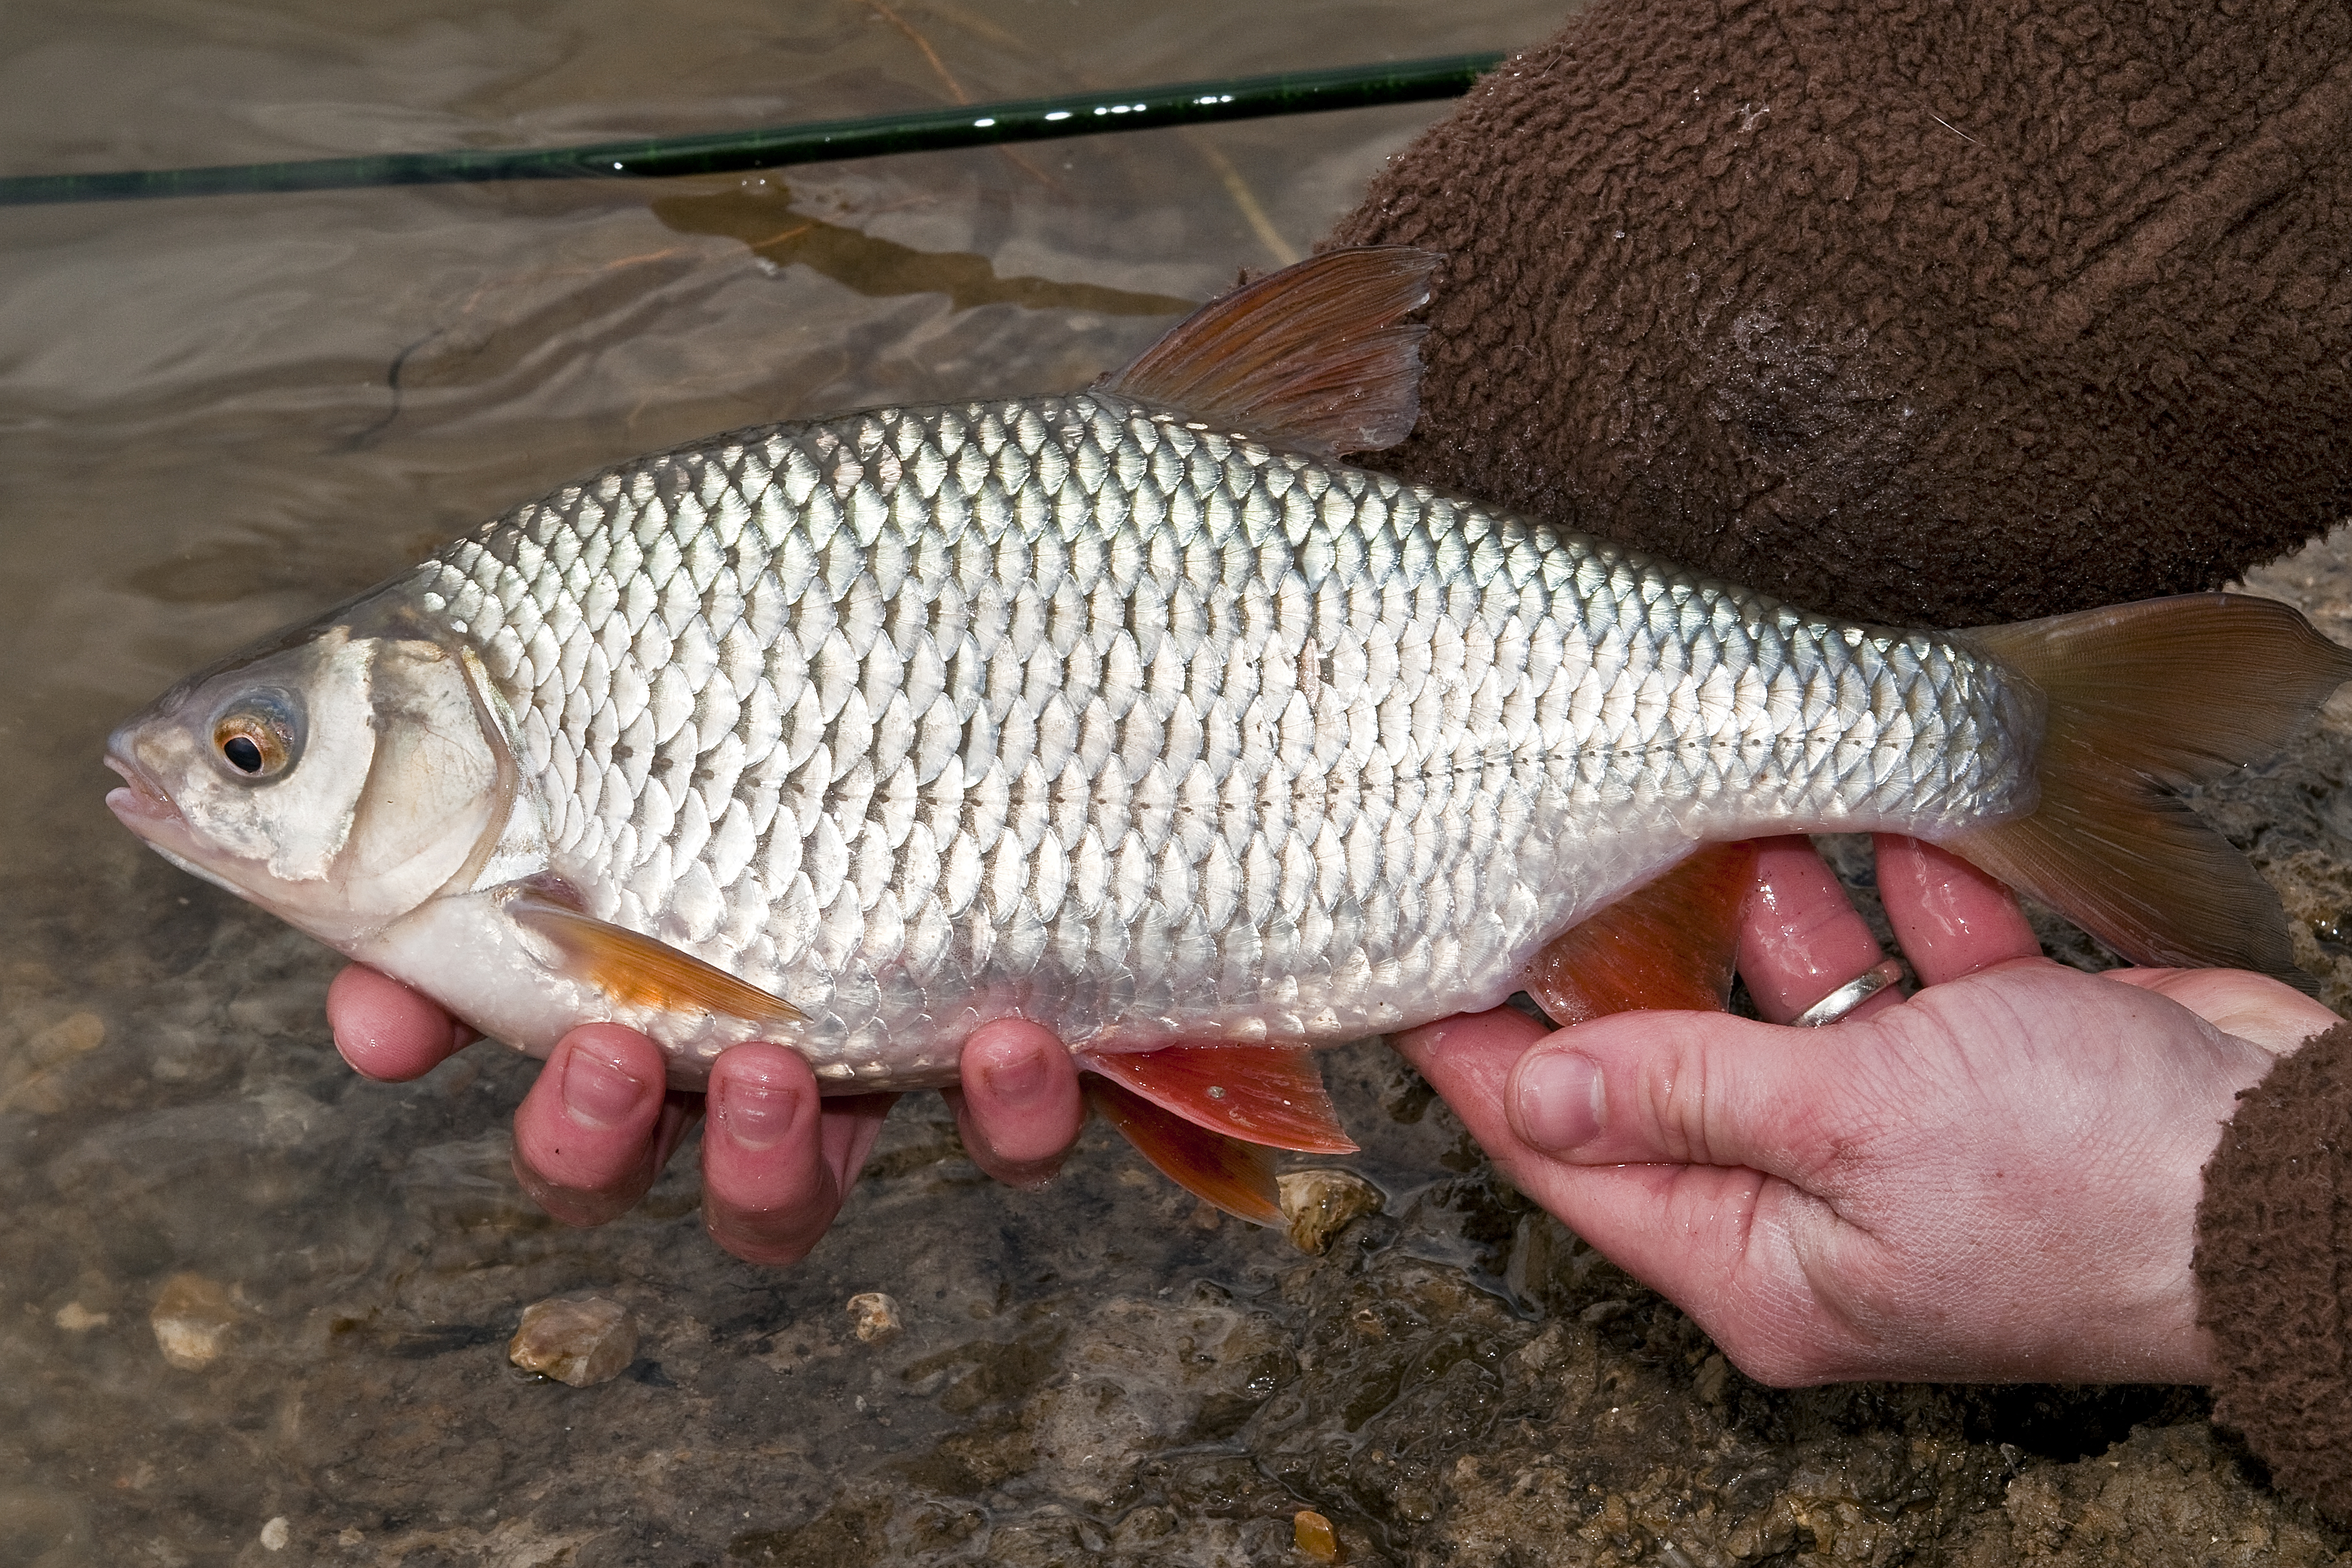 Roach fish images galleries with a bite for River fishing tips